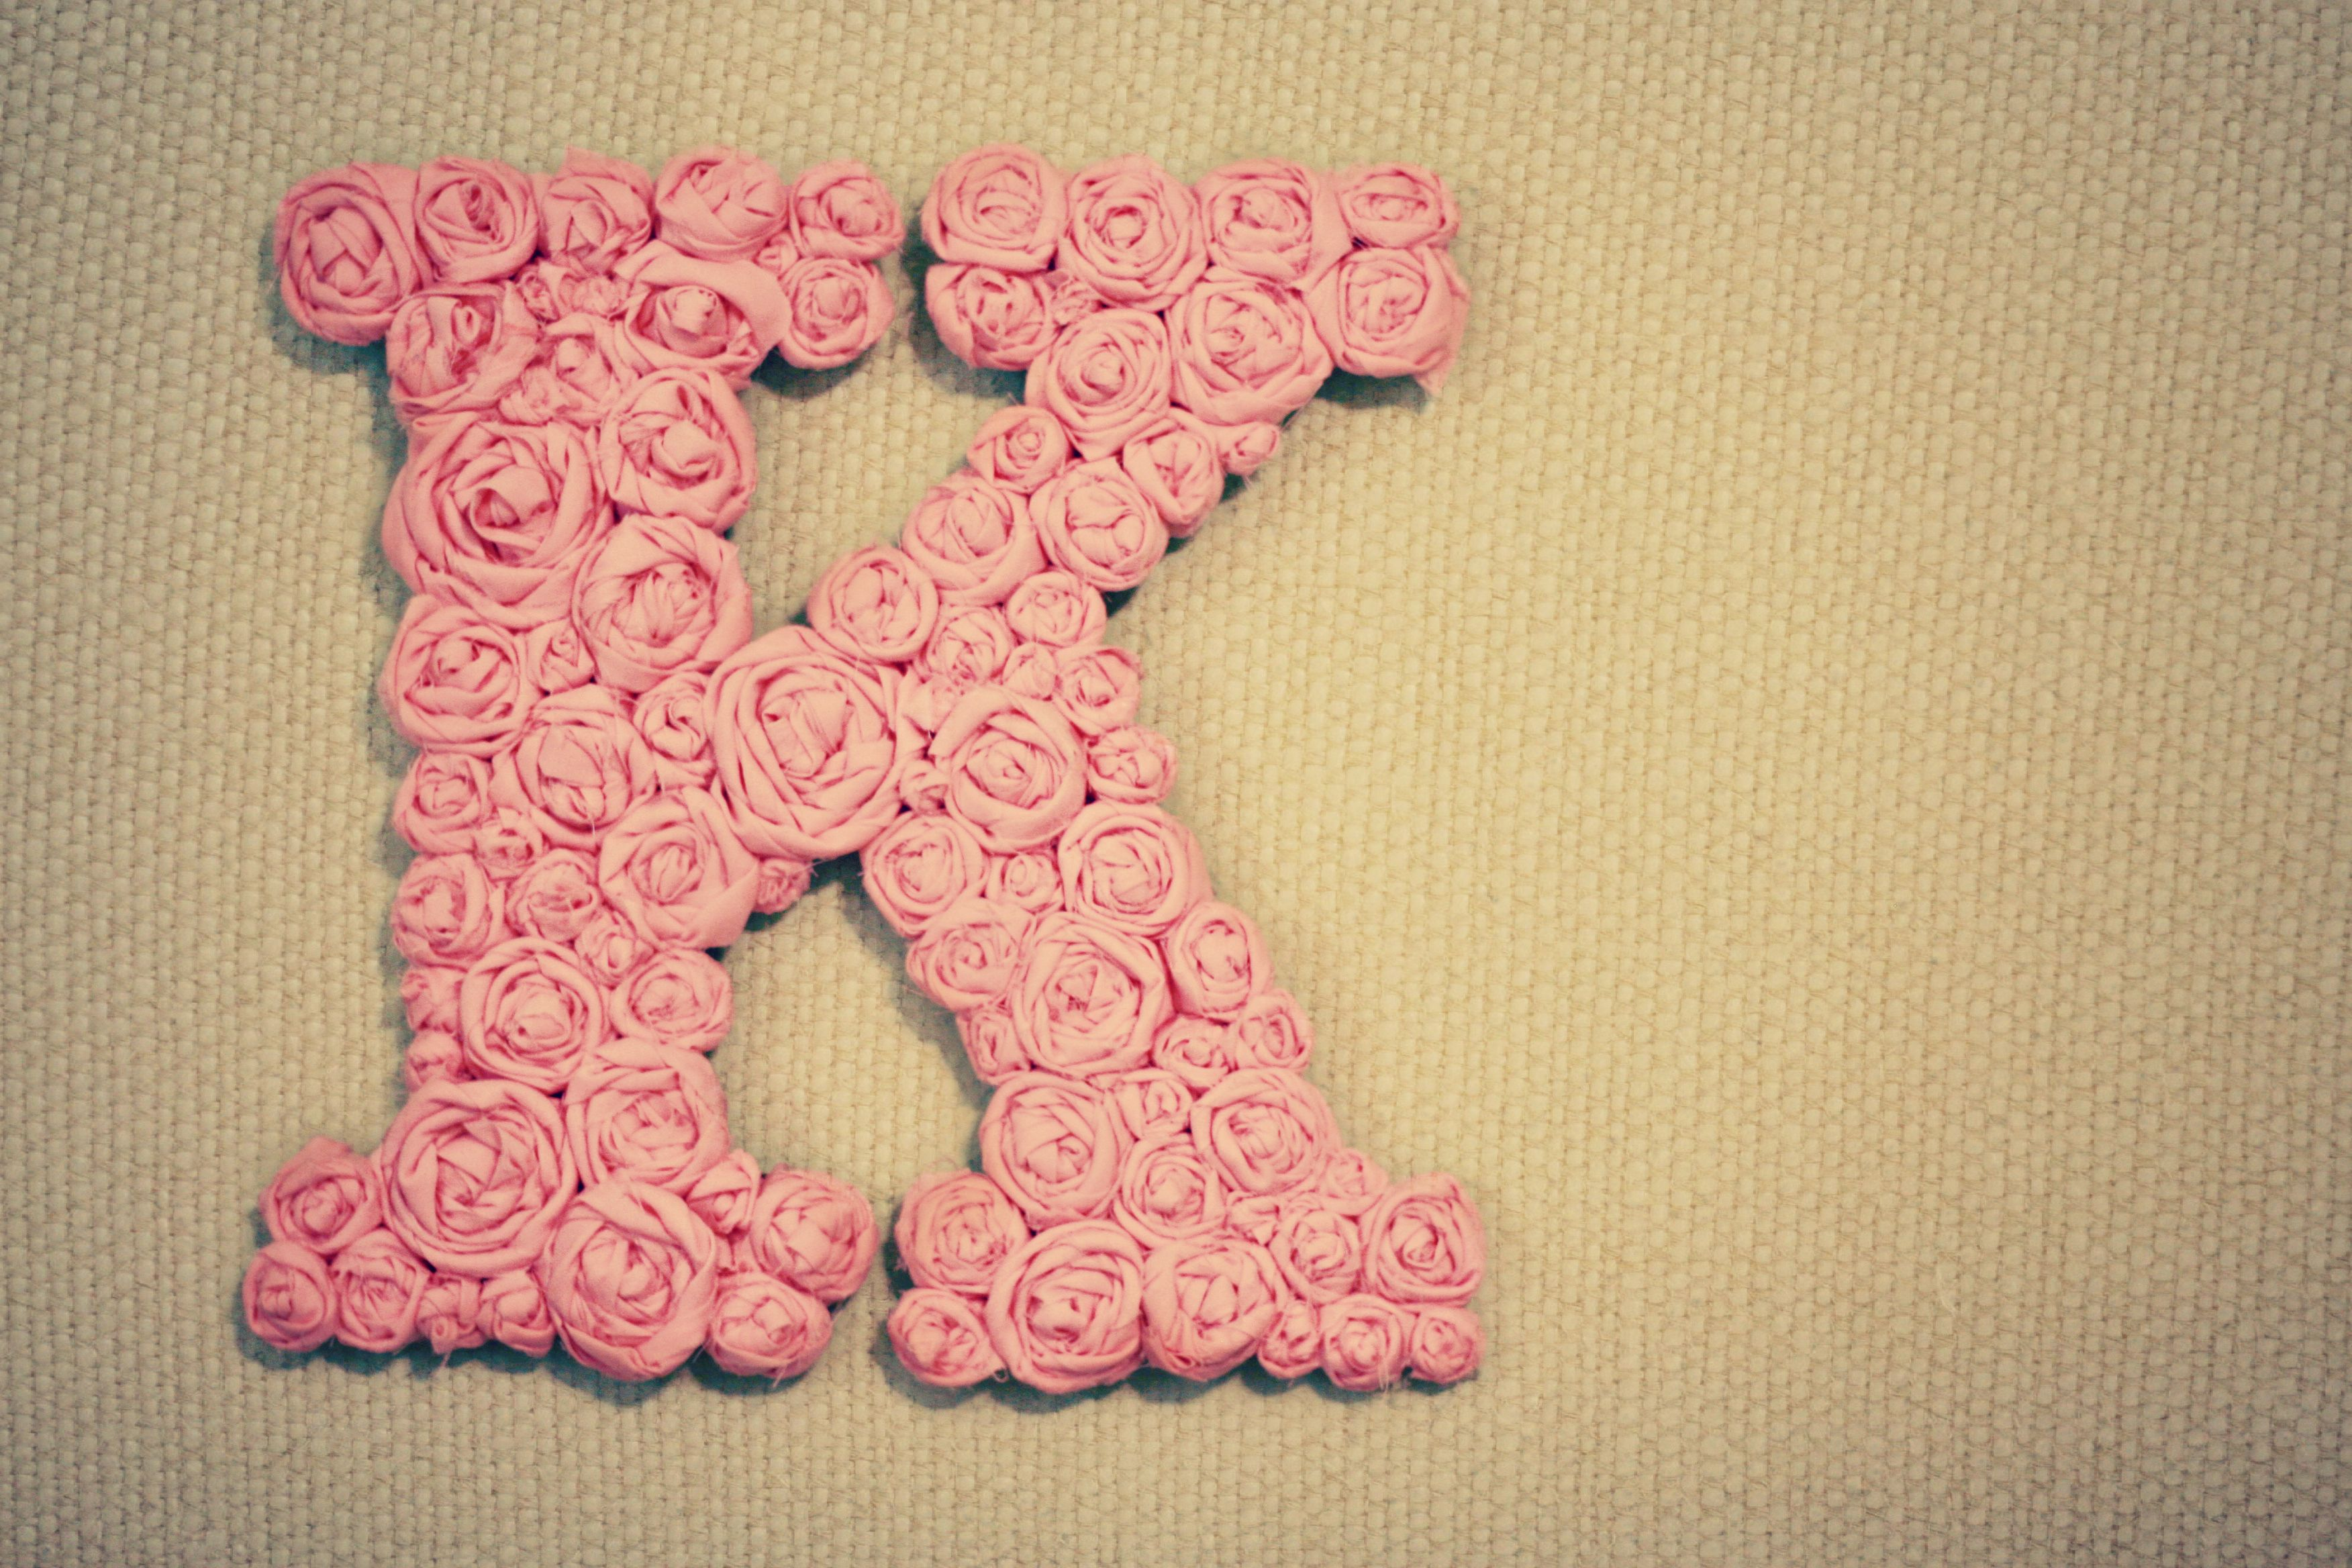 cardboard letter + cloth roses. i love this. | DIY | Pinterest ...